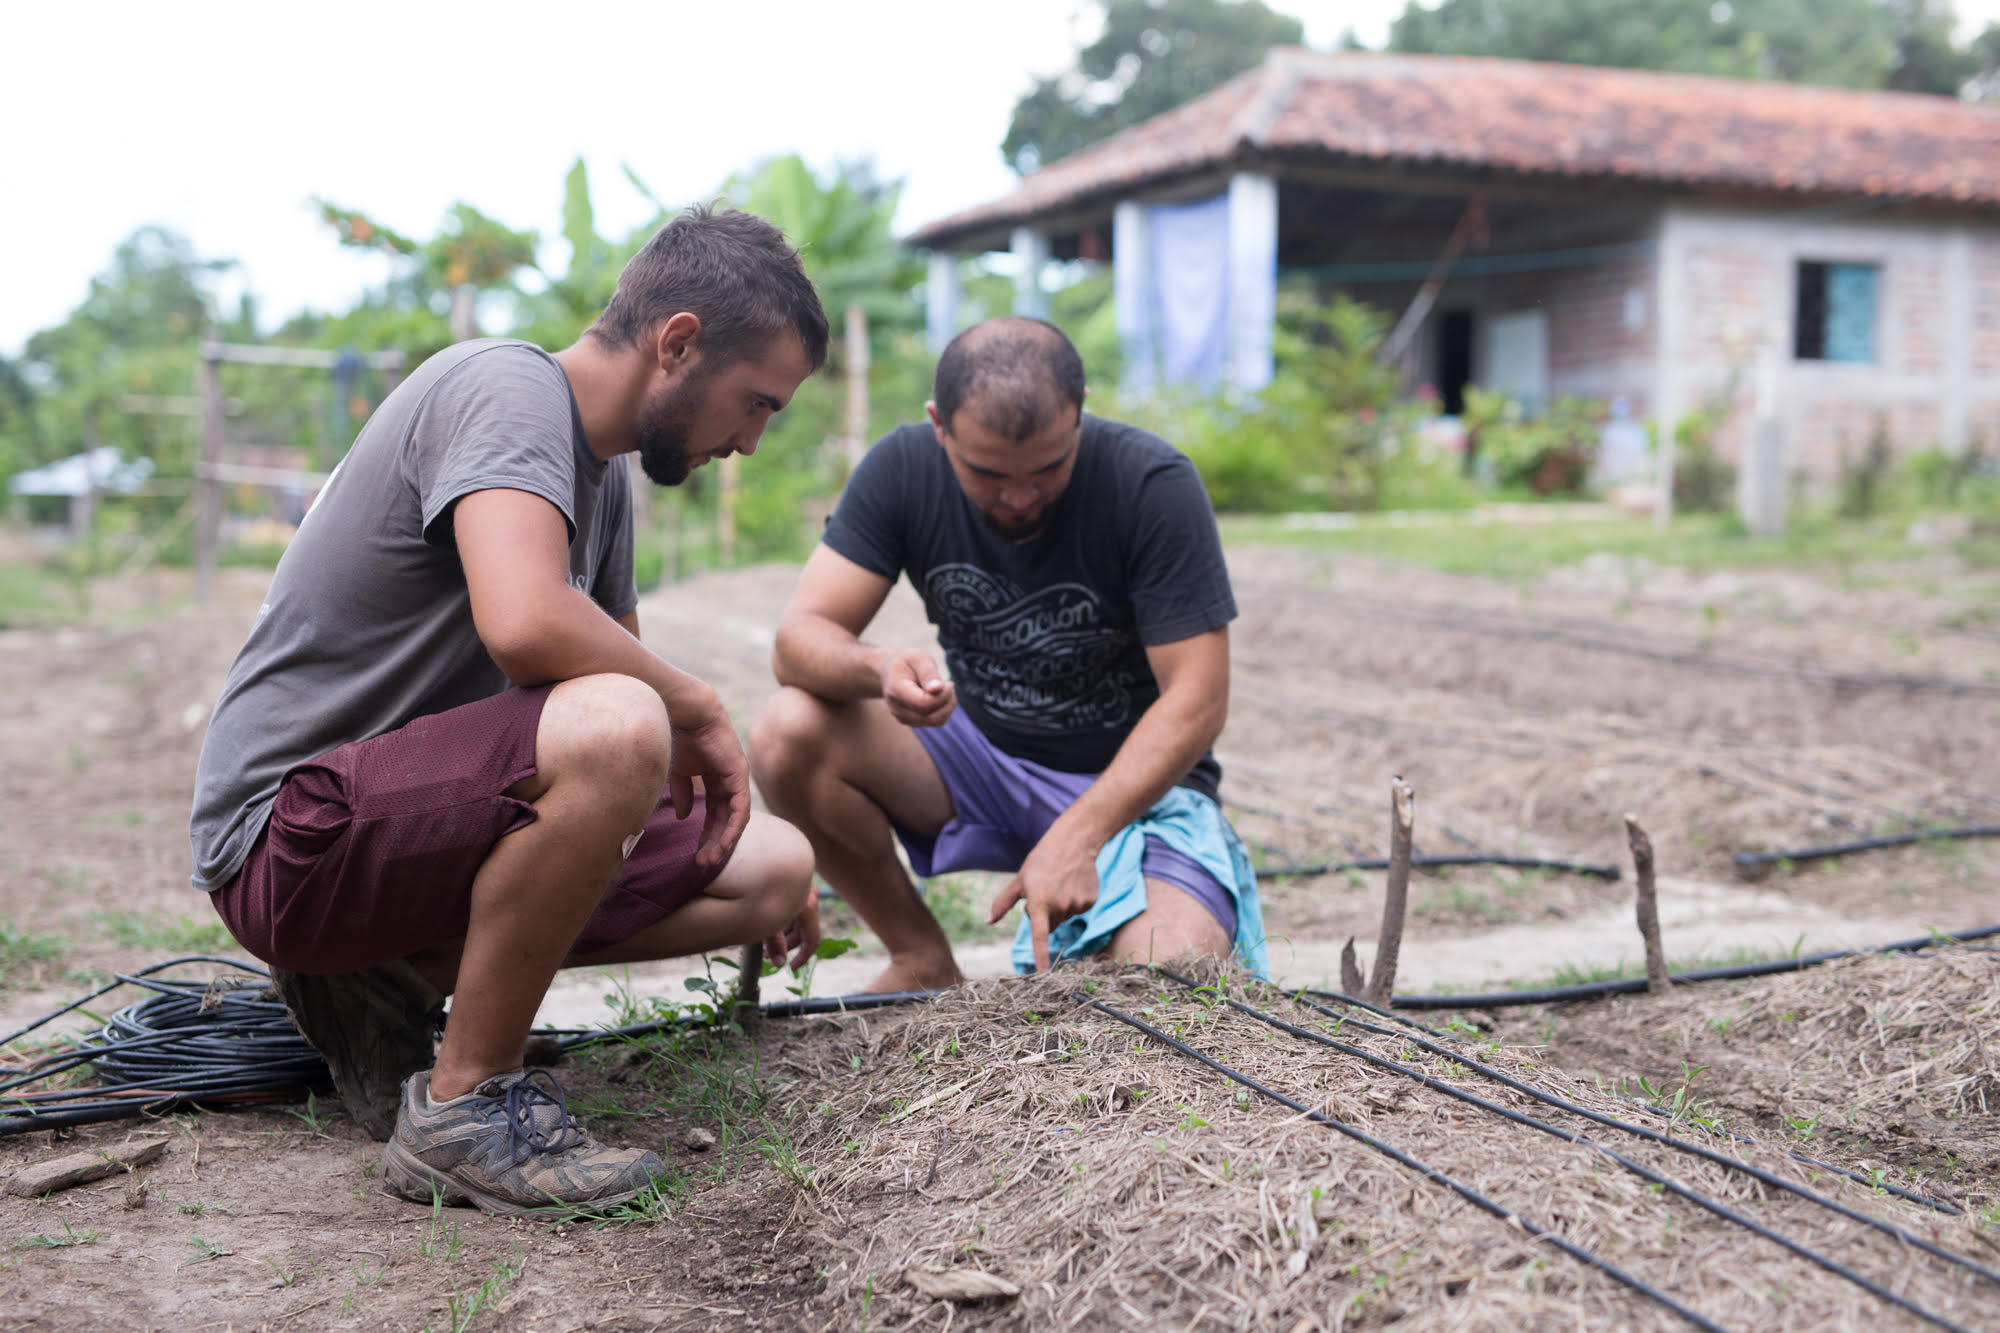 In 2017 Michael worked alongside G.O.D Latin America Cooperative, Antonio in the G.O.D demonstration garden in El Salvador.